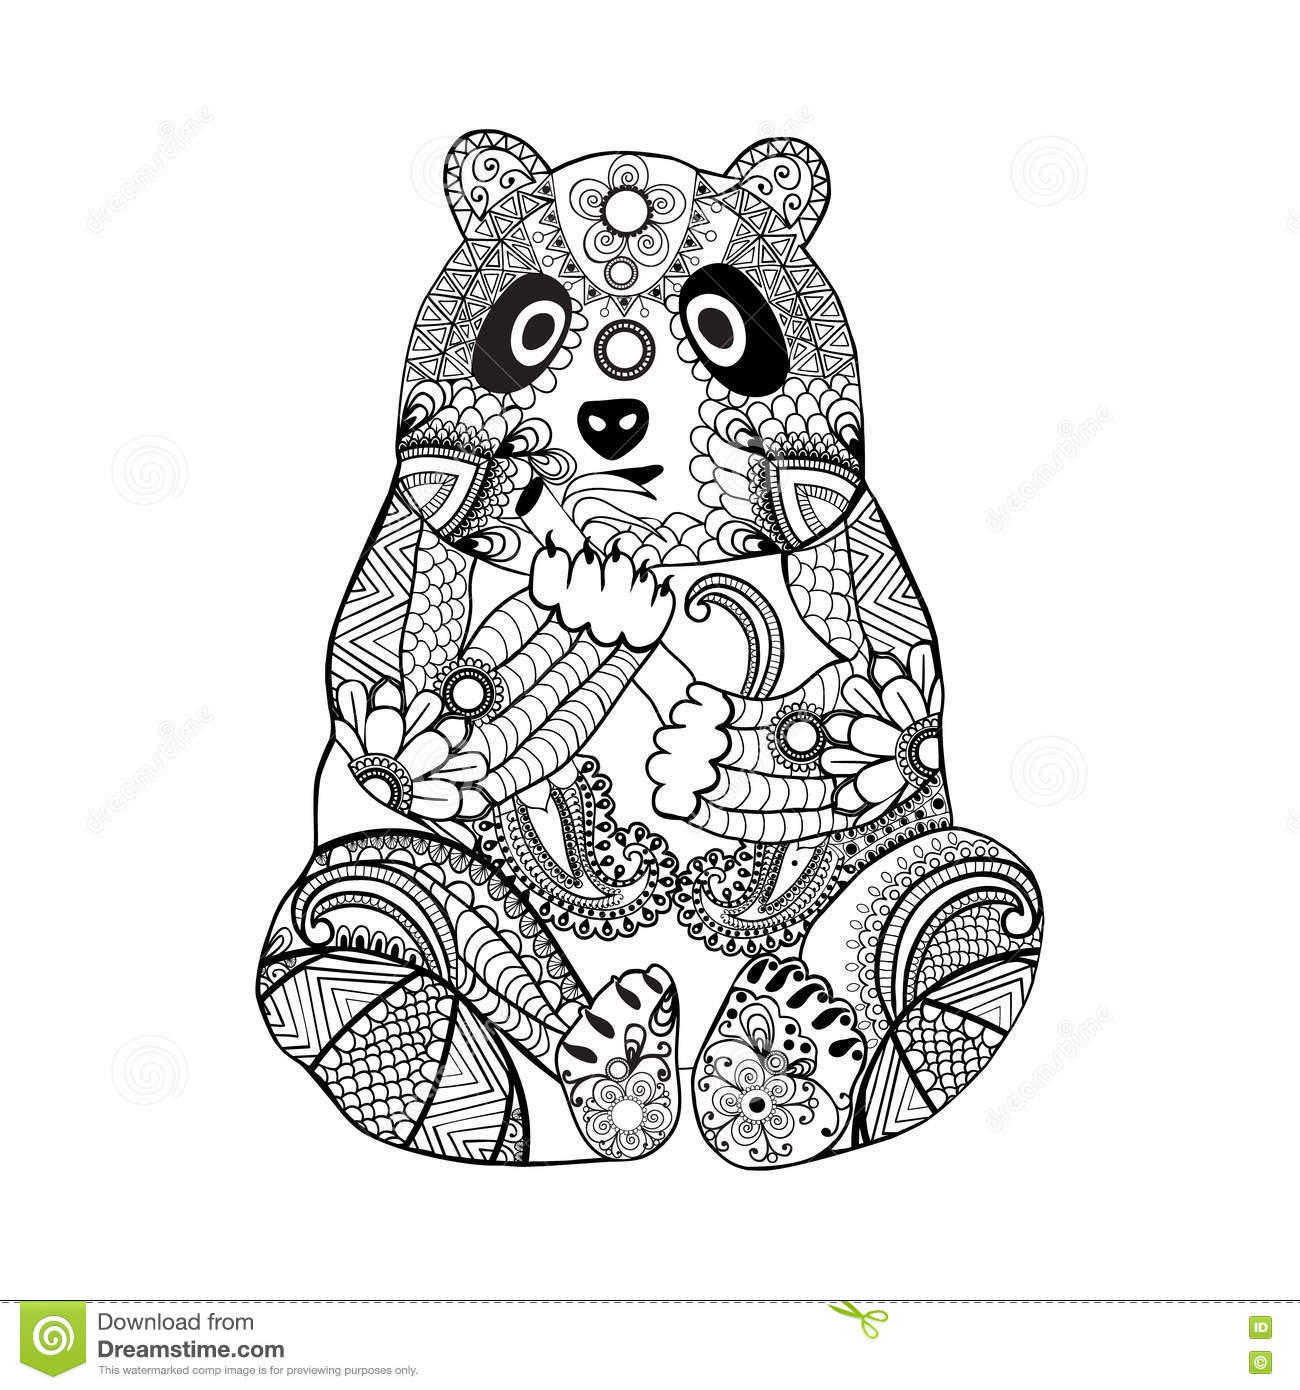 Hand Drawn Zentangle Panda For Coloring Book For Adult Stock Vector ...